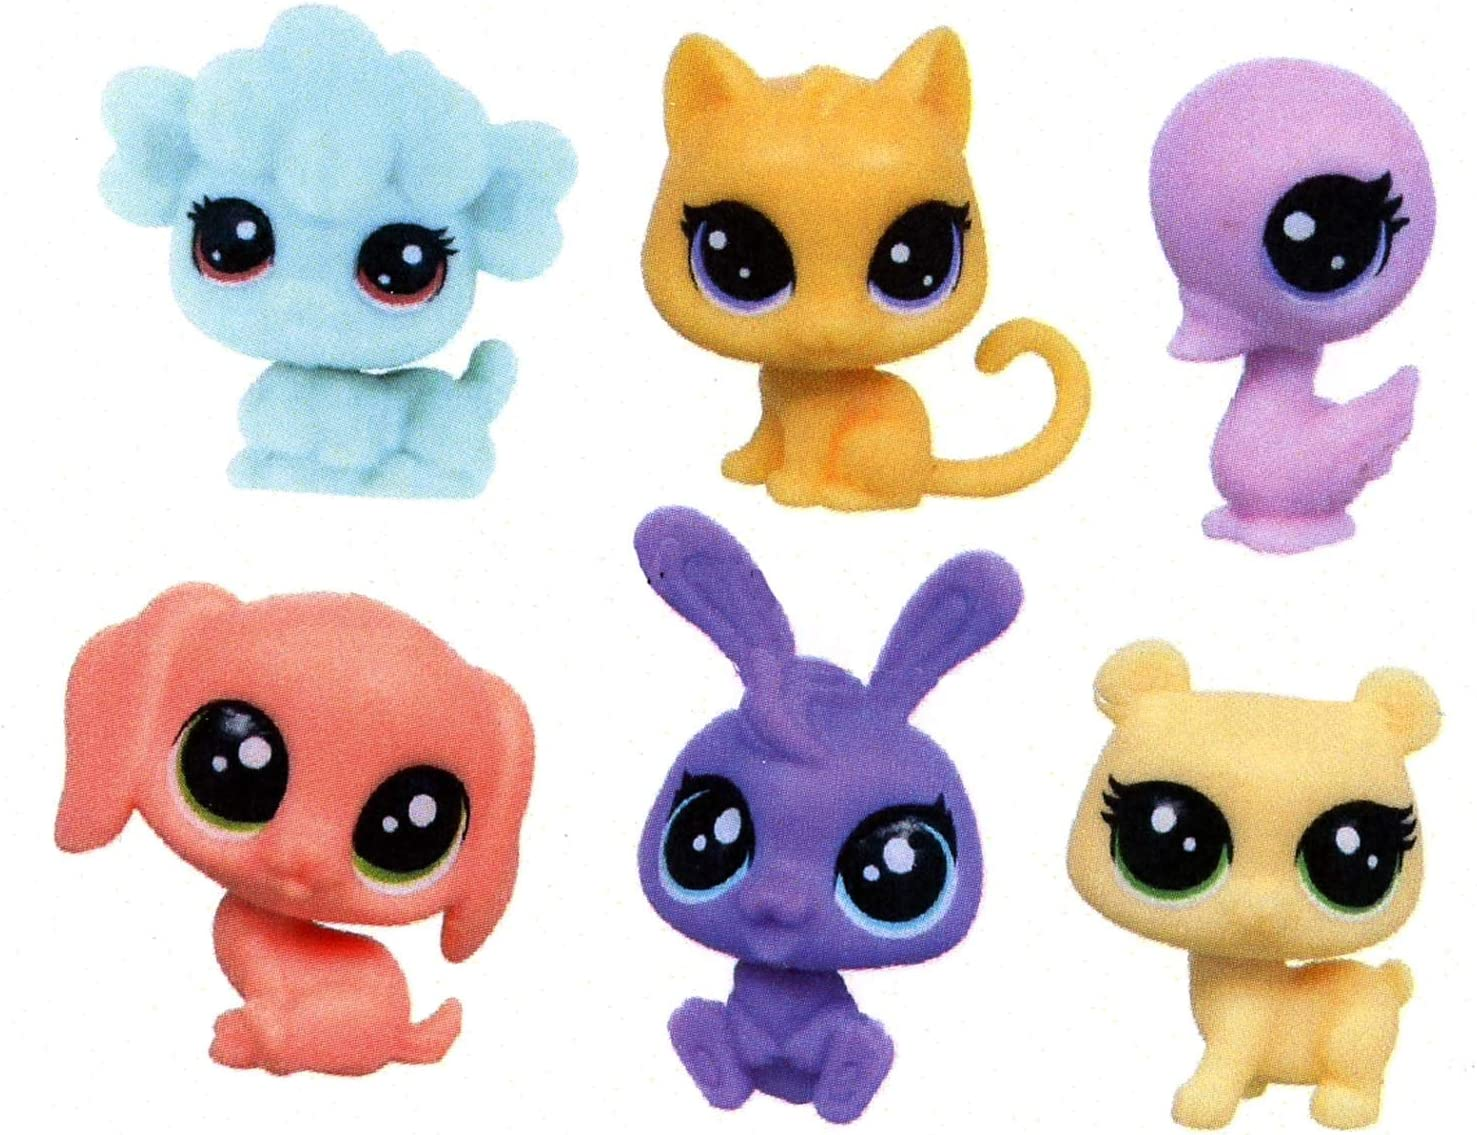 Set of 6 Piece Value Pet Mini-Scale Bear, Bunny, Beagle, Kitty, Swam and Sheep 3Dstereo Littlest Pet Shop Figurines